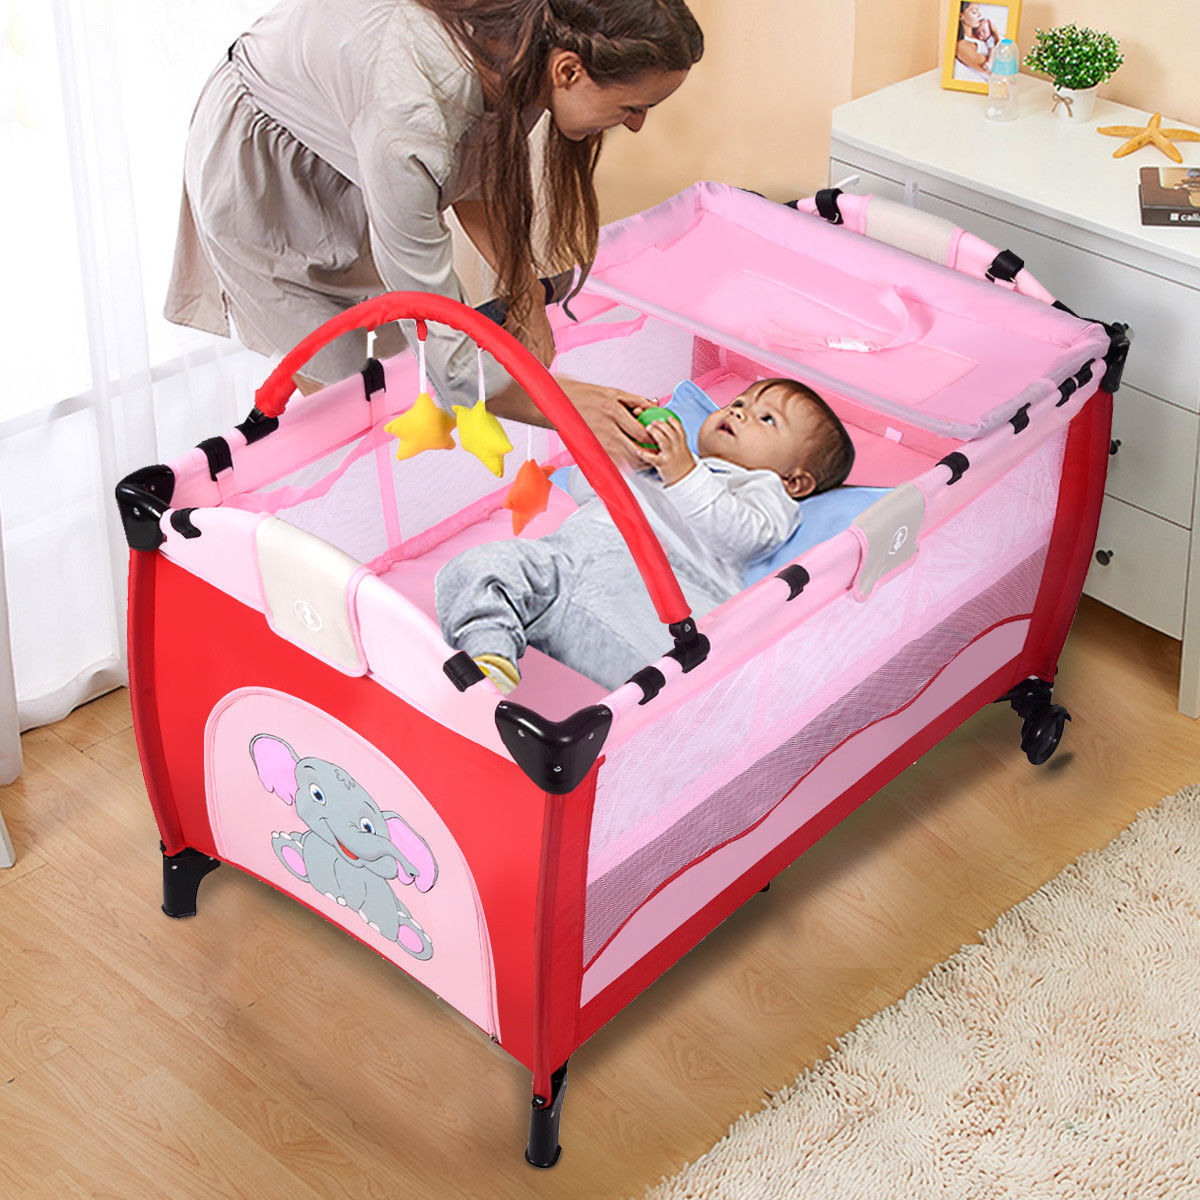 Goplus Pink Baby Crib Playpen Playard Pack Travel Infant Bassinet Bed Foldable Walmart Com Walmart Com